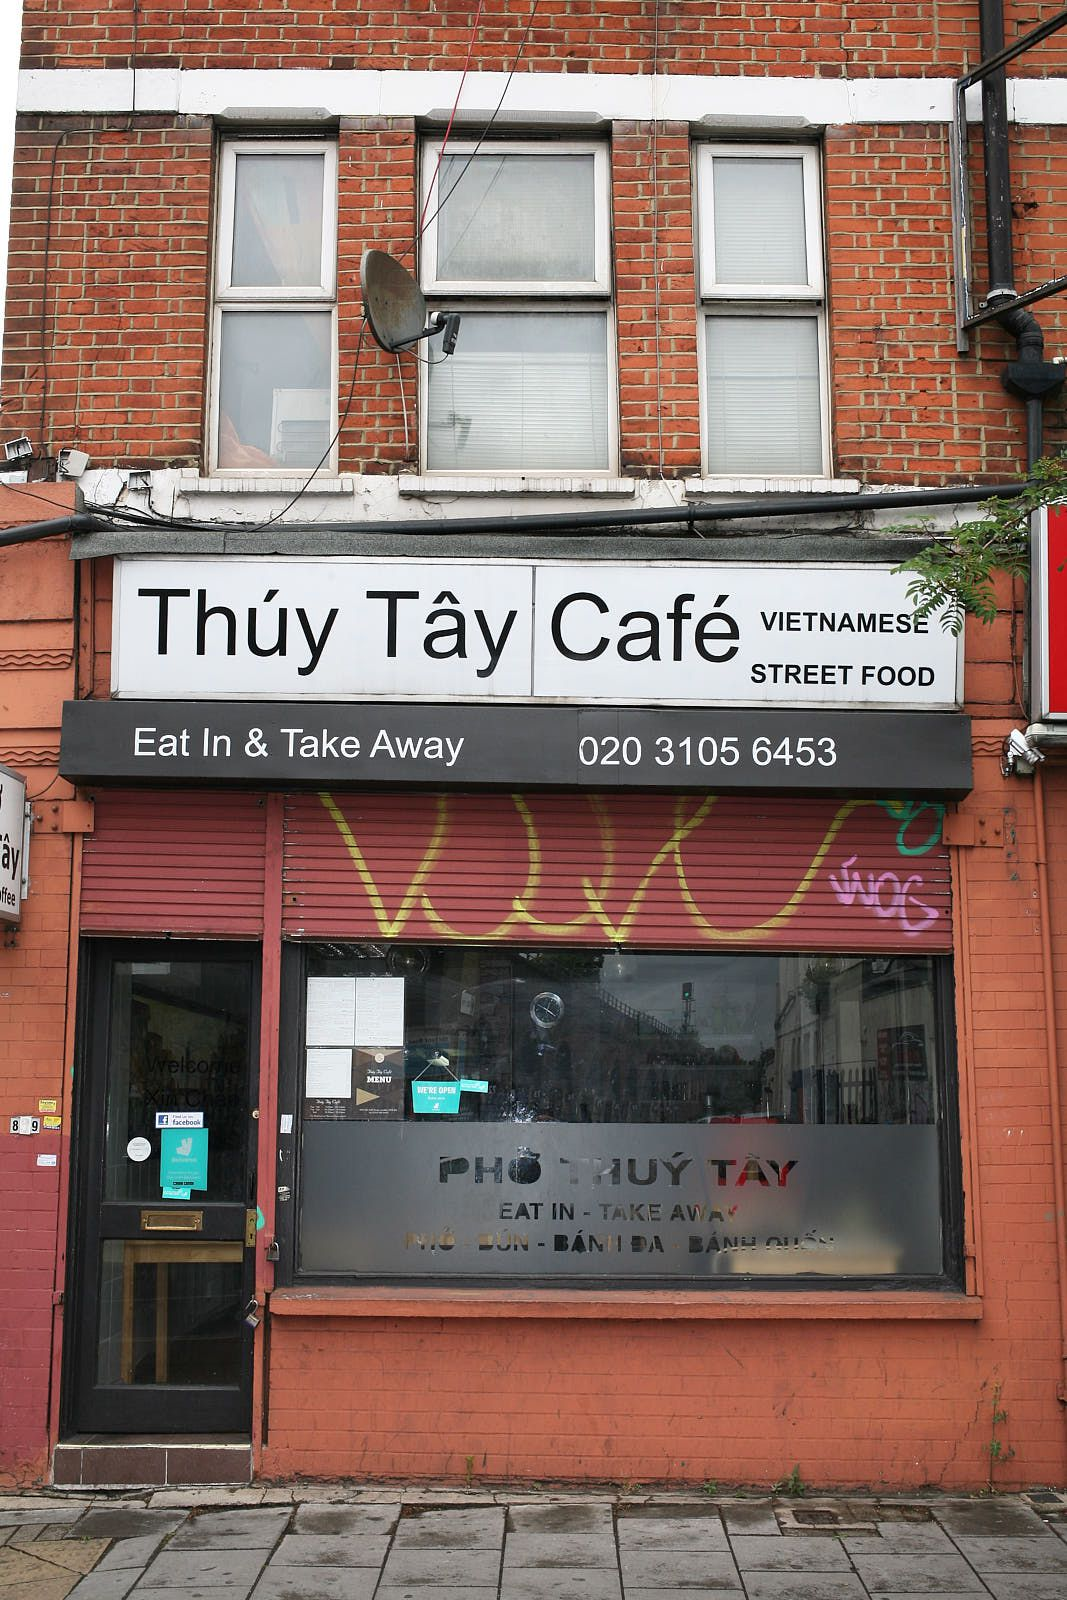 The exterior of Pho Thuy Tay Vietnamese restaurant on Old Kent Road, London, with bricks surrounding a white sign with Pho Thuy Tay written in black text